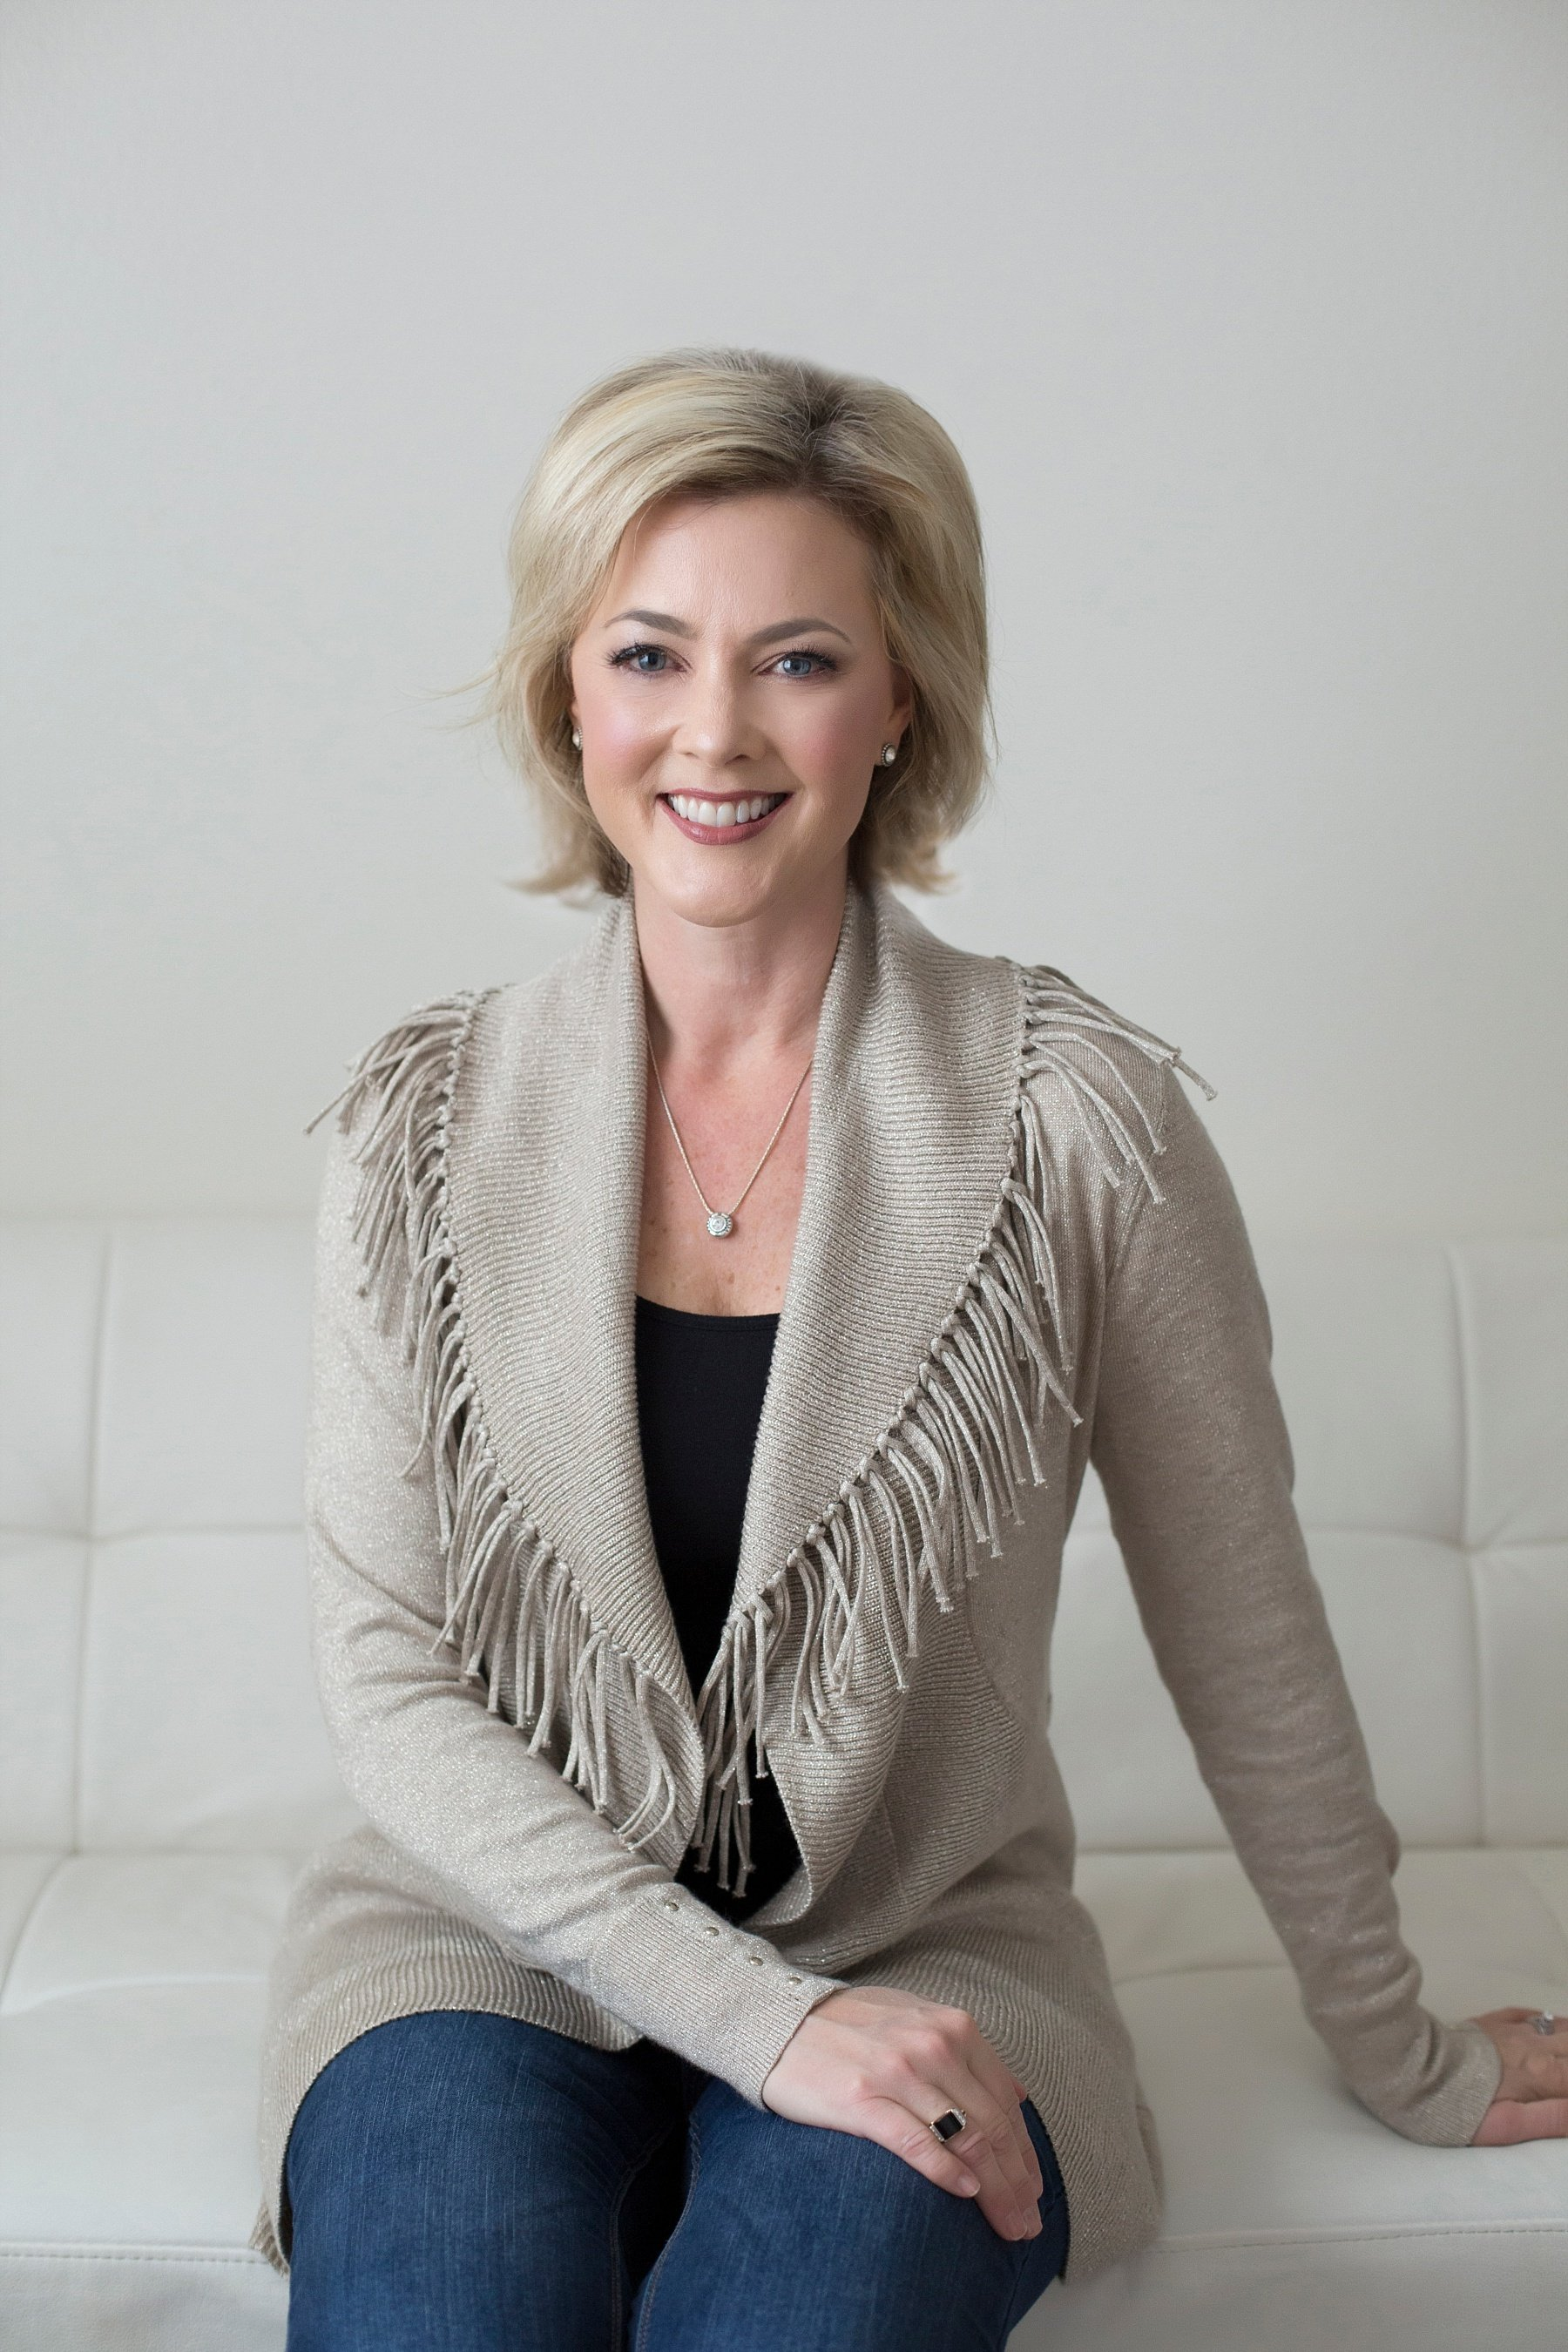 Allison Dunn in a tan sweater smiling as she sits on a white leather couch.